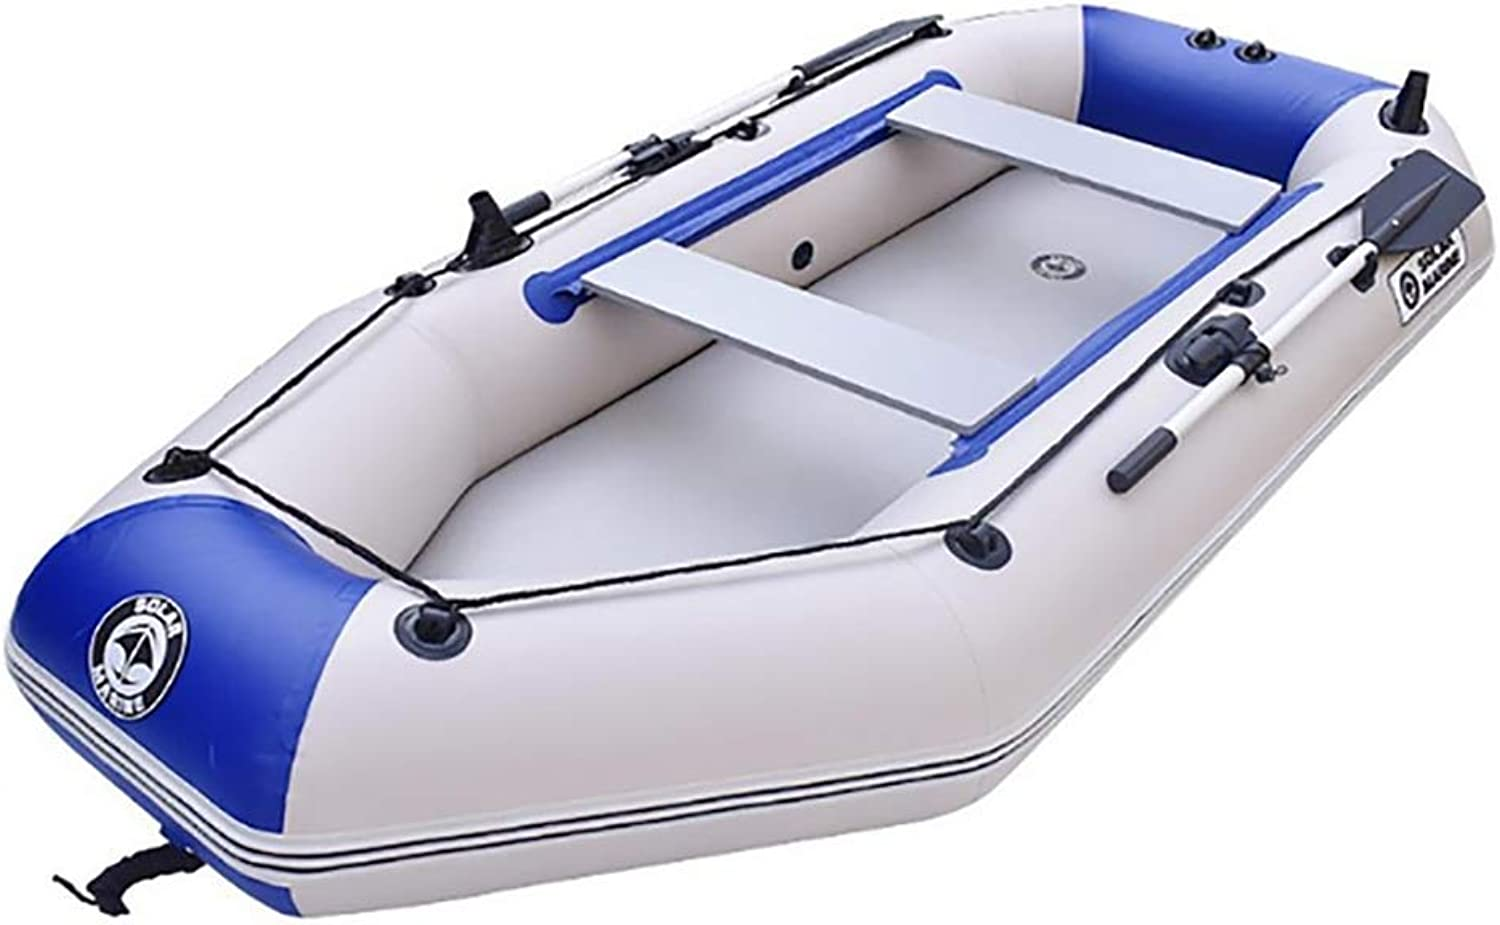 Kayak Fishing Boat, 2Person Inflatable Kayak Set with Aluminum Oars and High Output Air Pump 175 x 102 cm